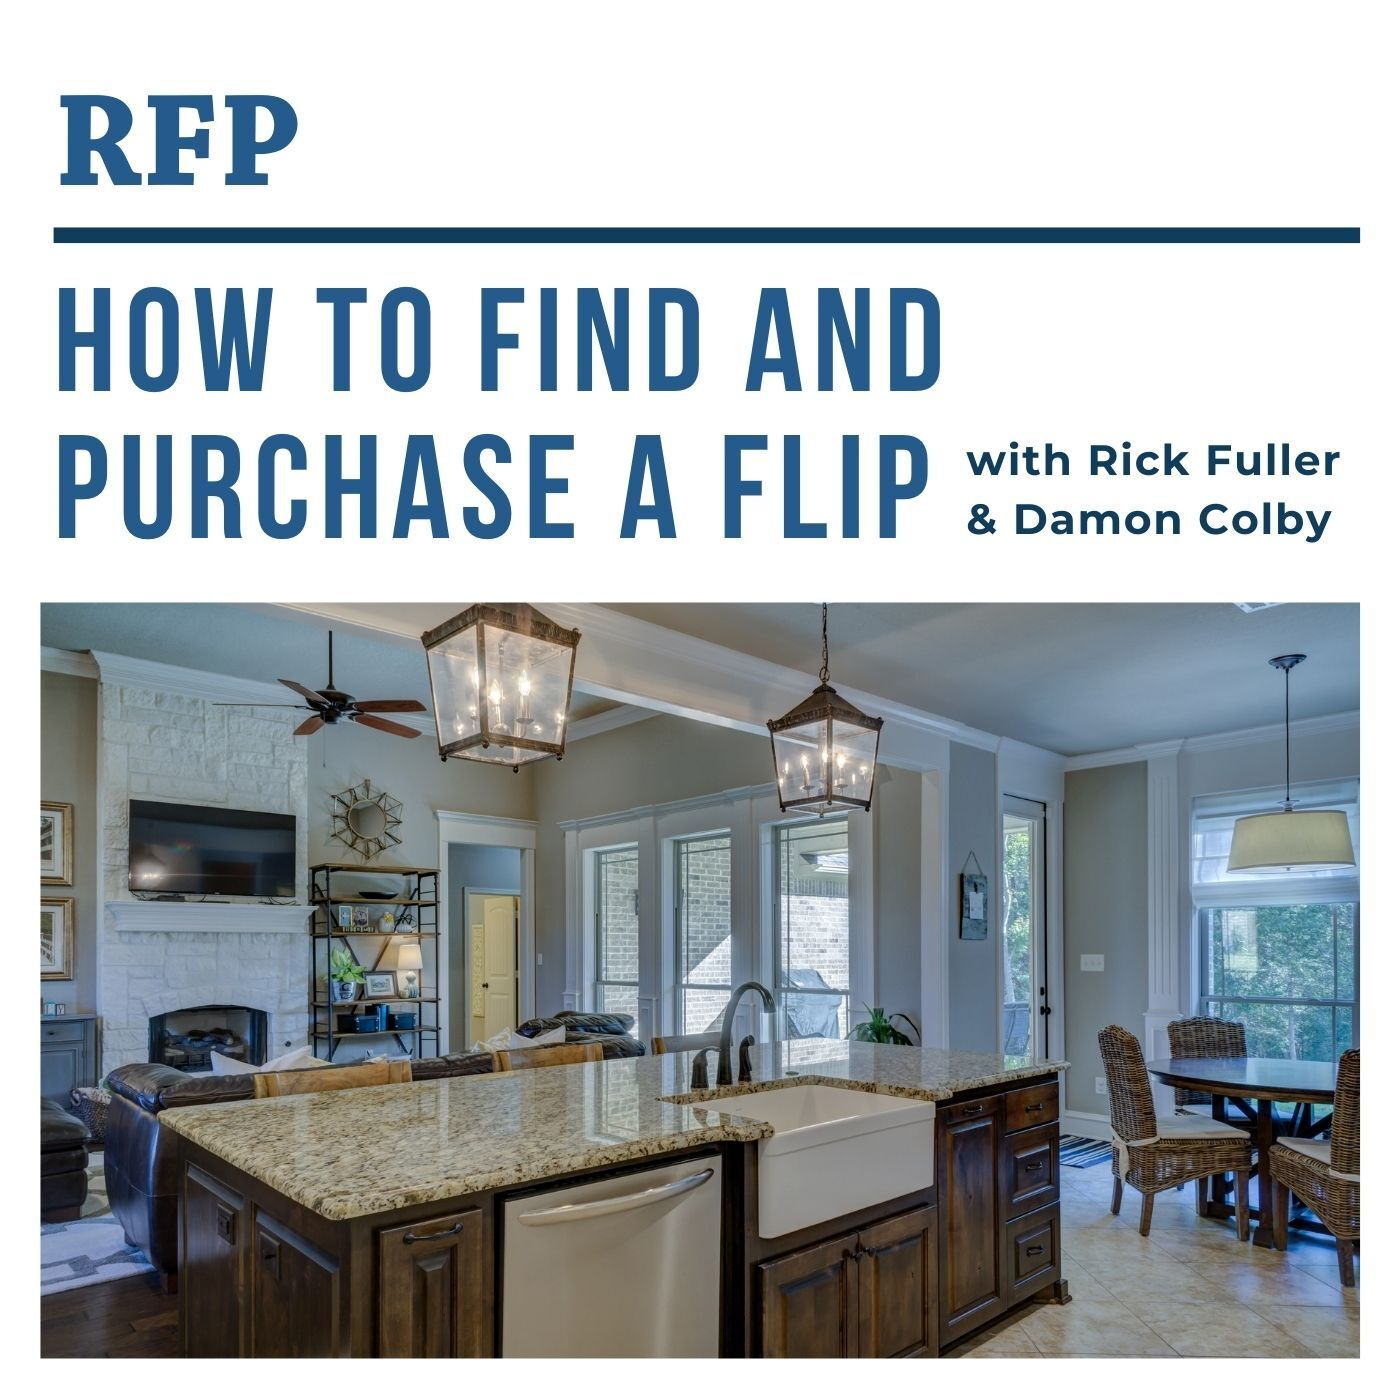 How to Find and Purchase a Flip